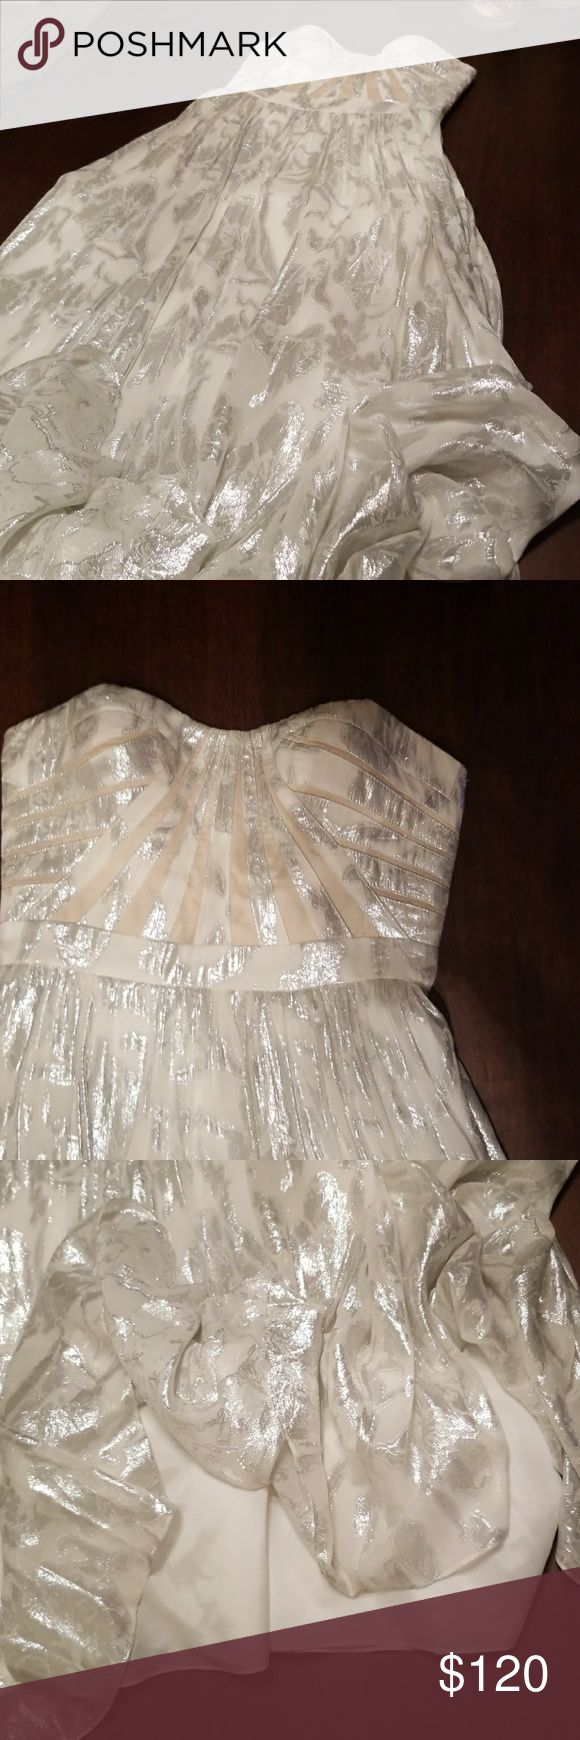 """Beautiful long strapless gown Strapless 70% silk white and 30 % metallic silver print long lined gown (4ft and 6"""" in length) size 8. Great for prom, wedding or any black tie affair. Aidan Mattox Dresses Prom"""